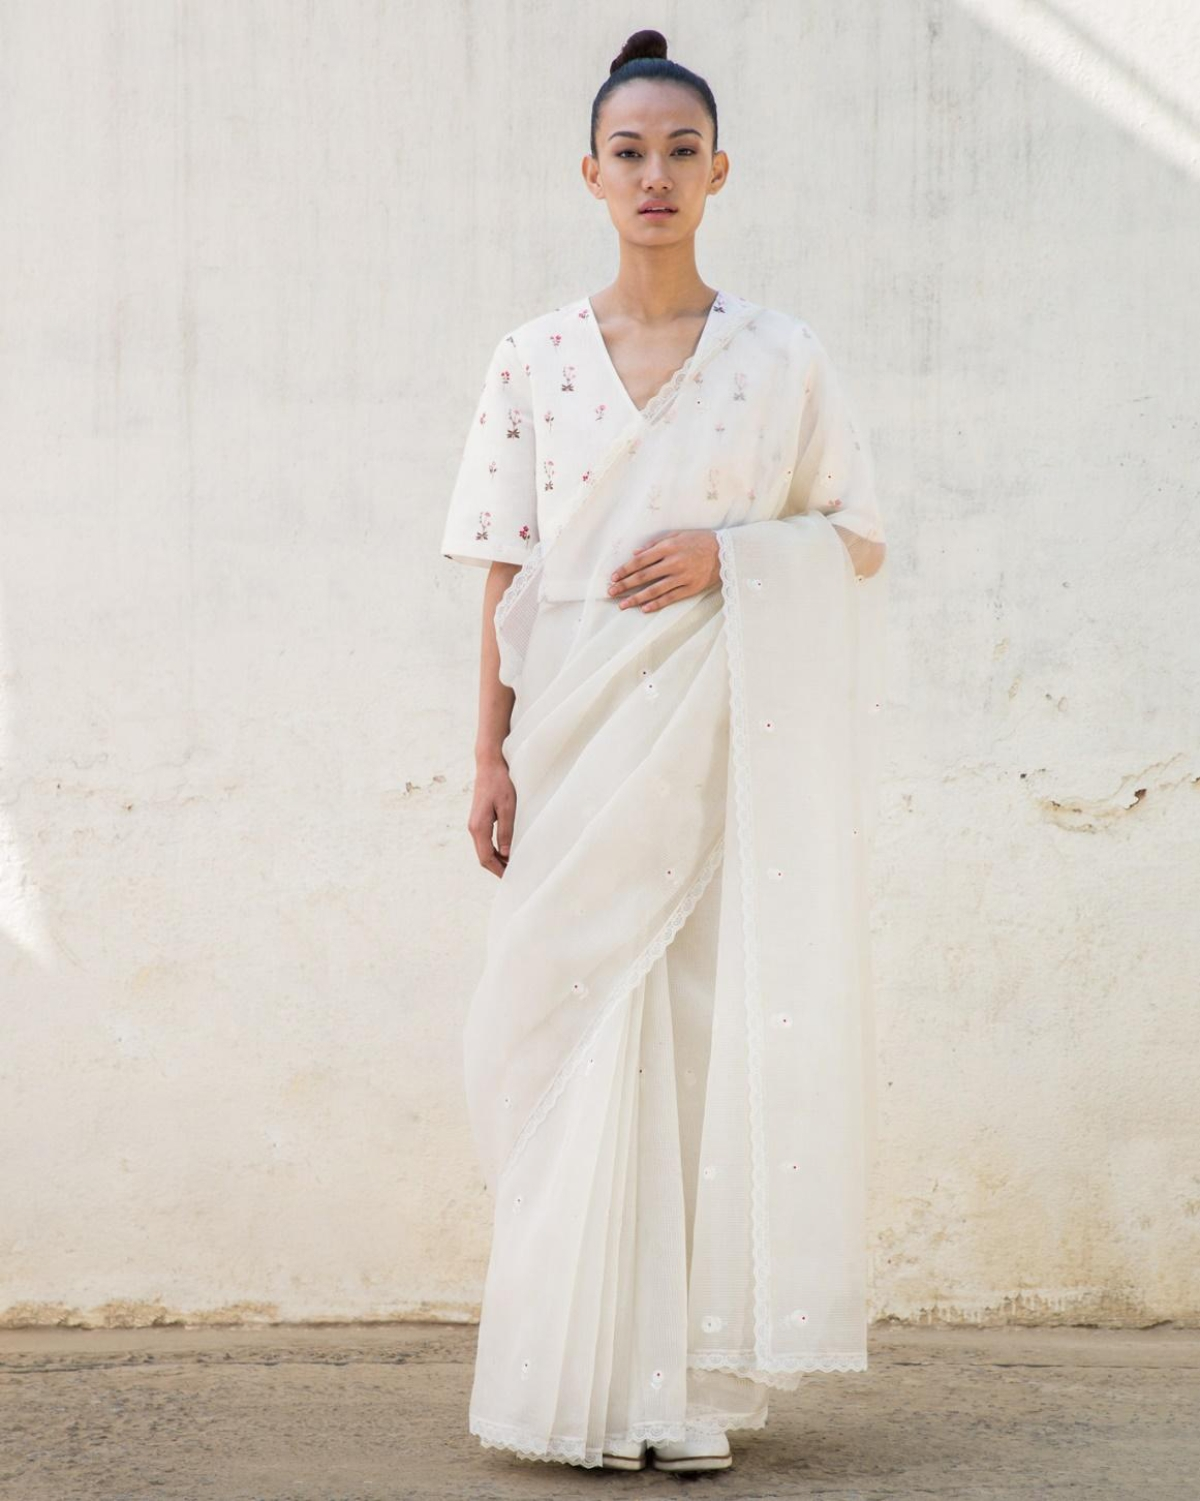 Classic Indian Six-Yard Wonders That Never Go Out of Fashion